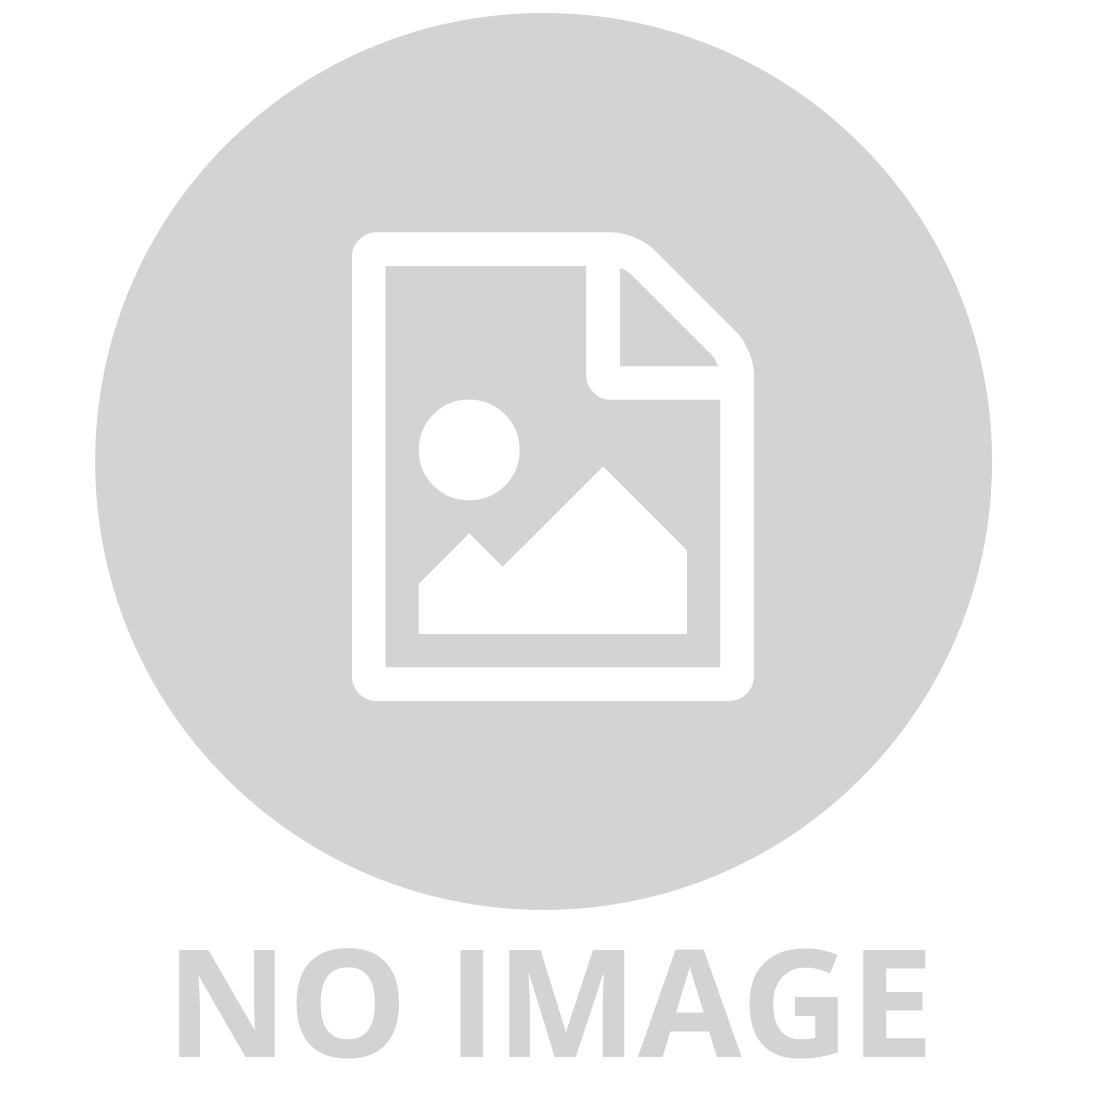 RAVENSBURGER 1000 PIECE JIGSAW PUZZLE - HERBS AND SPICES